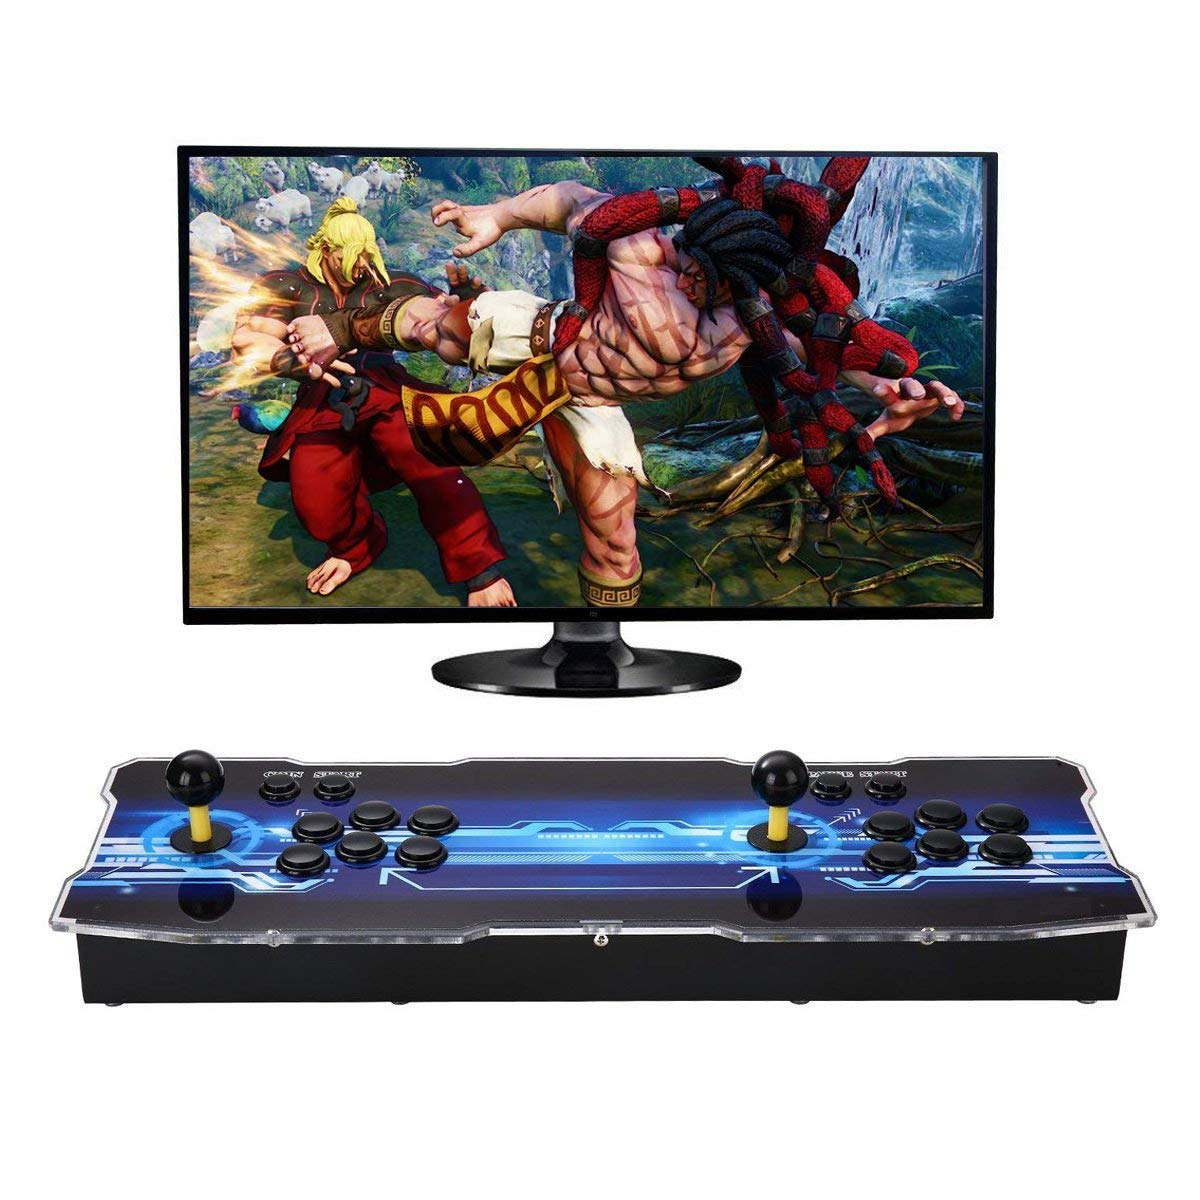 SeeKool Newest 3D Pandora X Arcade Game Console, 1920x1080 Full HD 4 Players Max Arcade Machine with 2200 Games, Support Extended TF Card& USB Disk to Enjoy More Games PC / Laptop / TV / PS3 by SeeKool (Image #8)